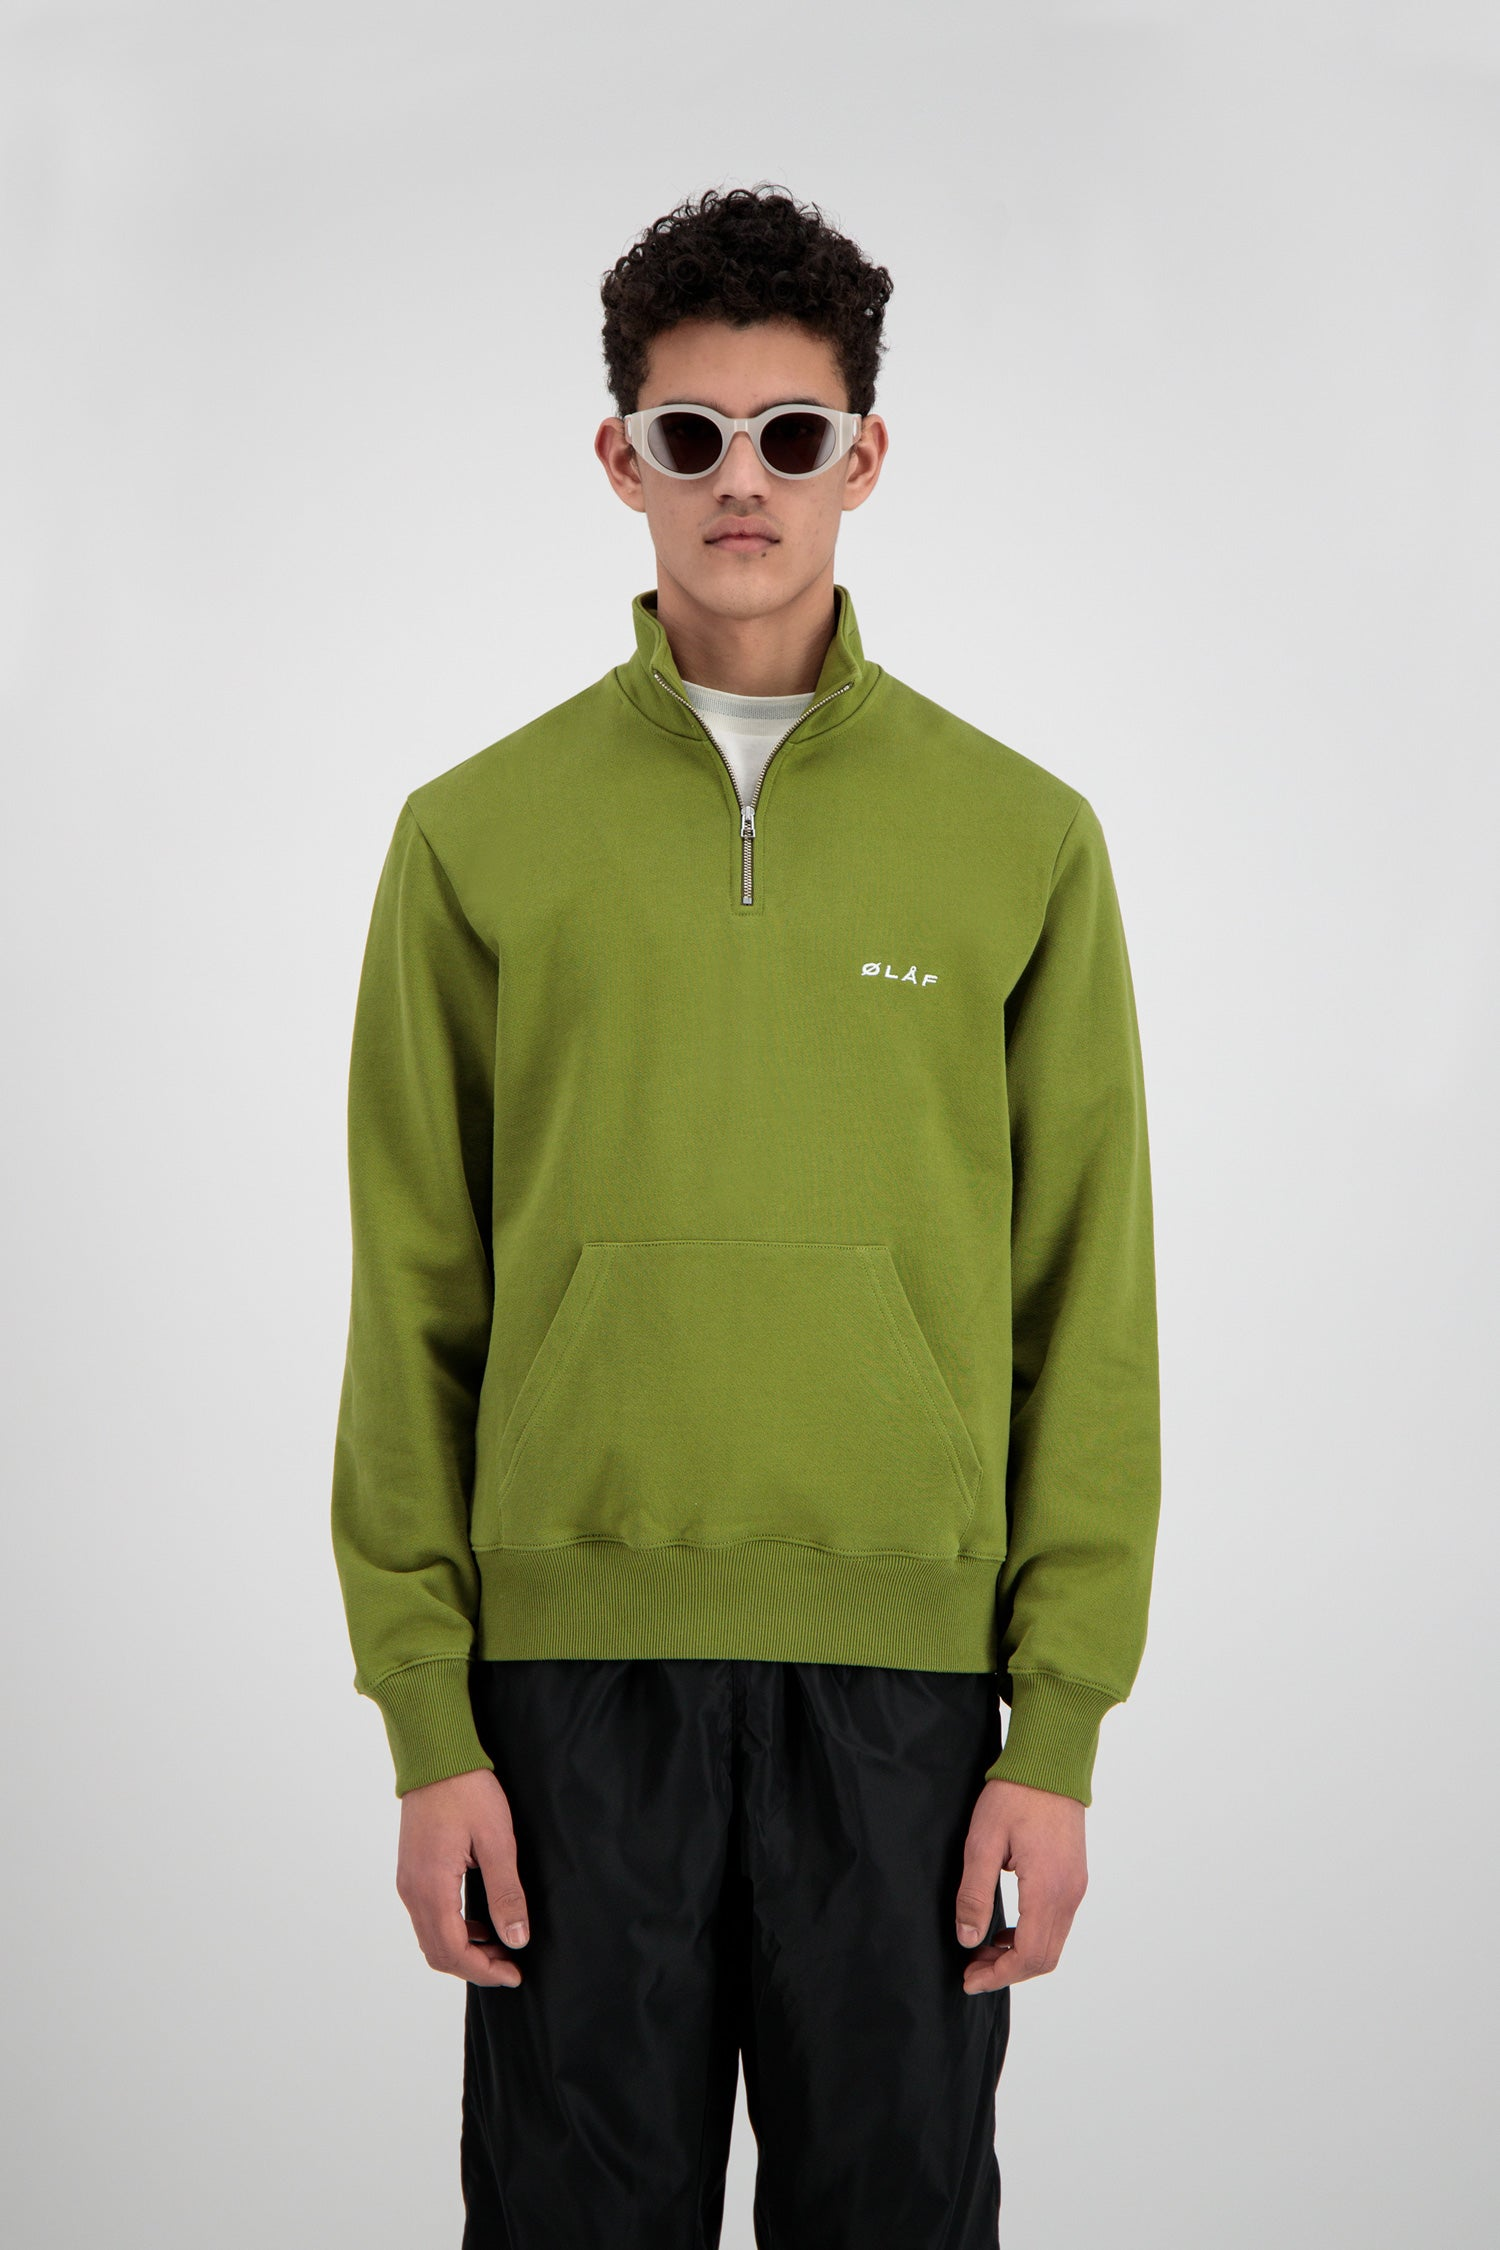 ØLÅF Zip Mock Sweater <br>Avocado Green